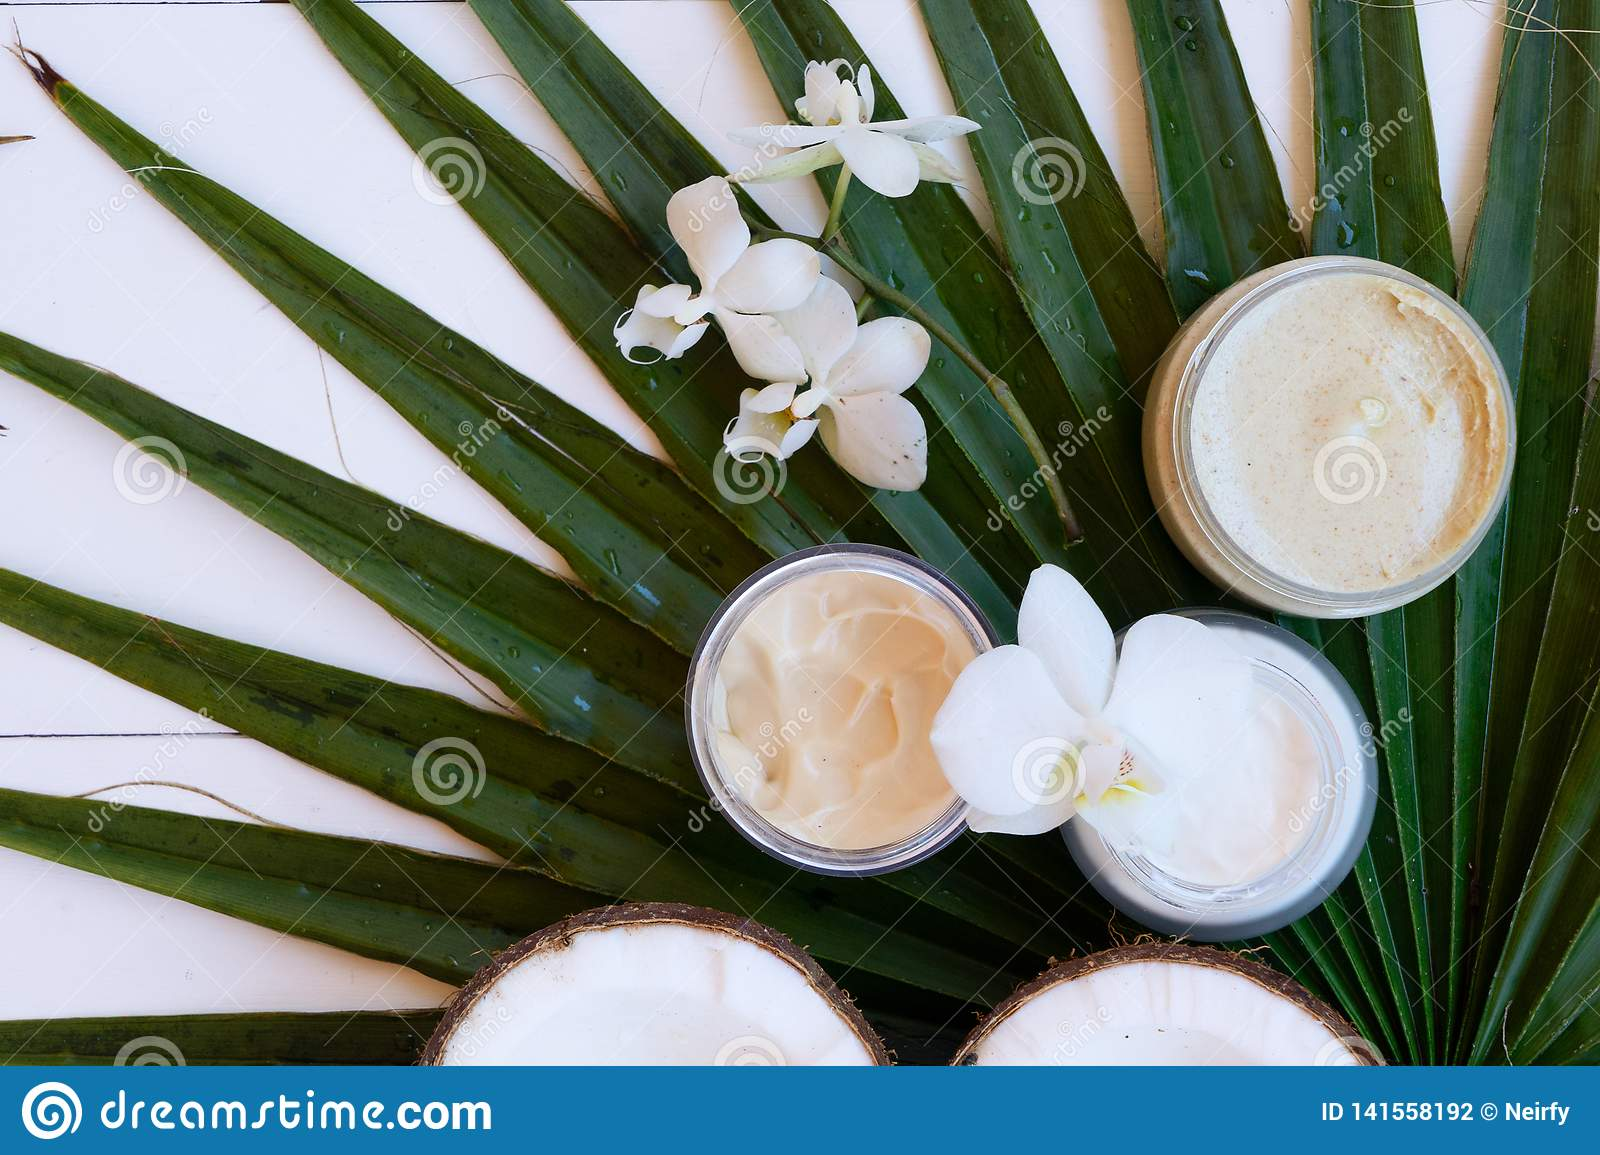 Coconut oil and cosmetics